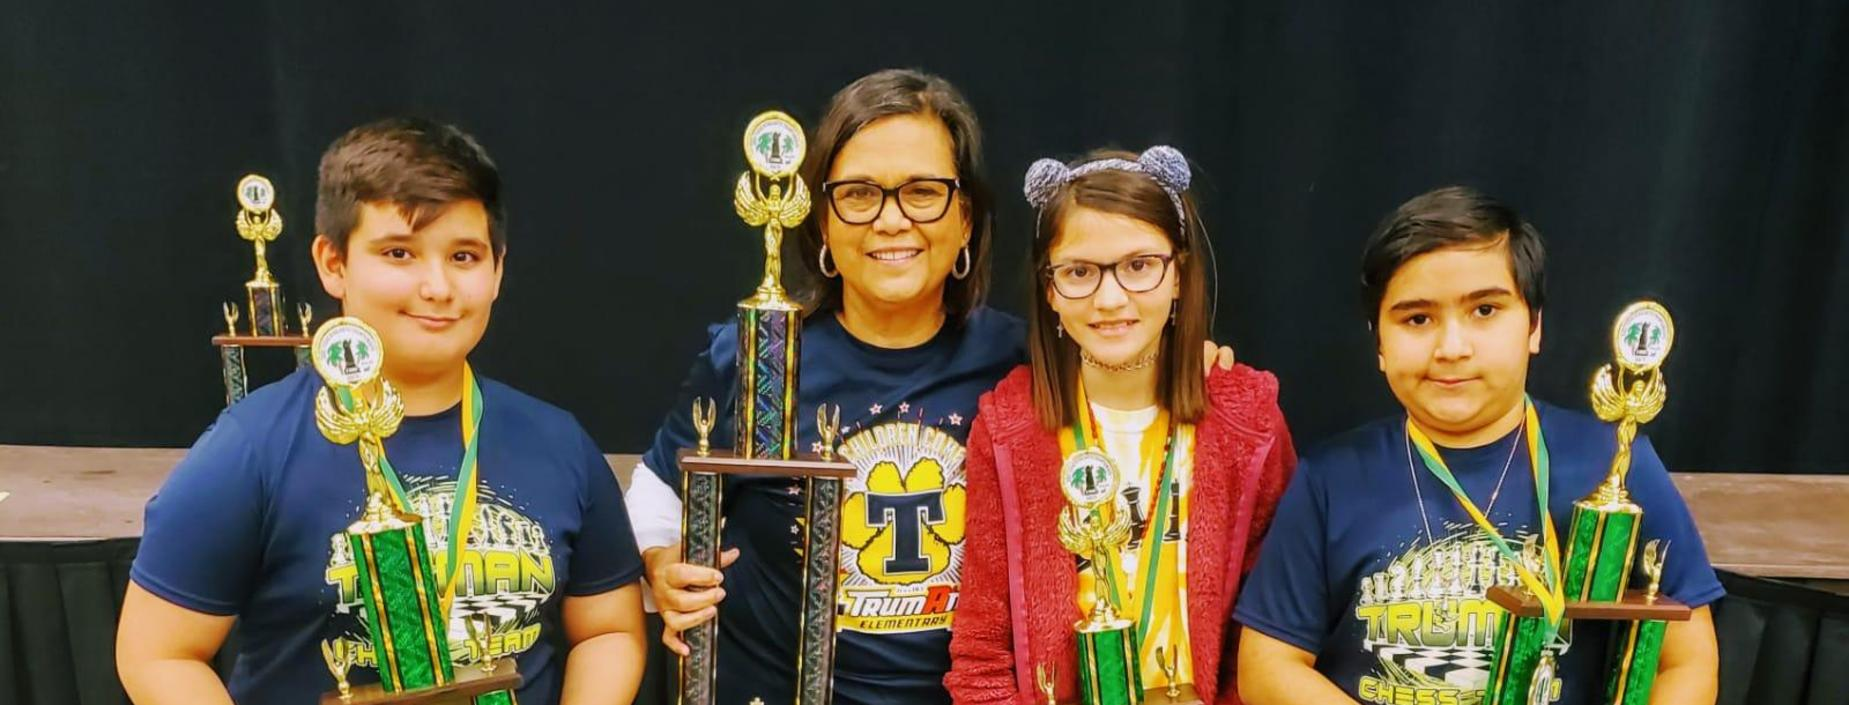 The Truman Chess Team poses with trophies.